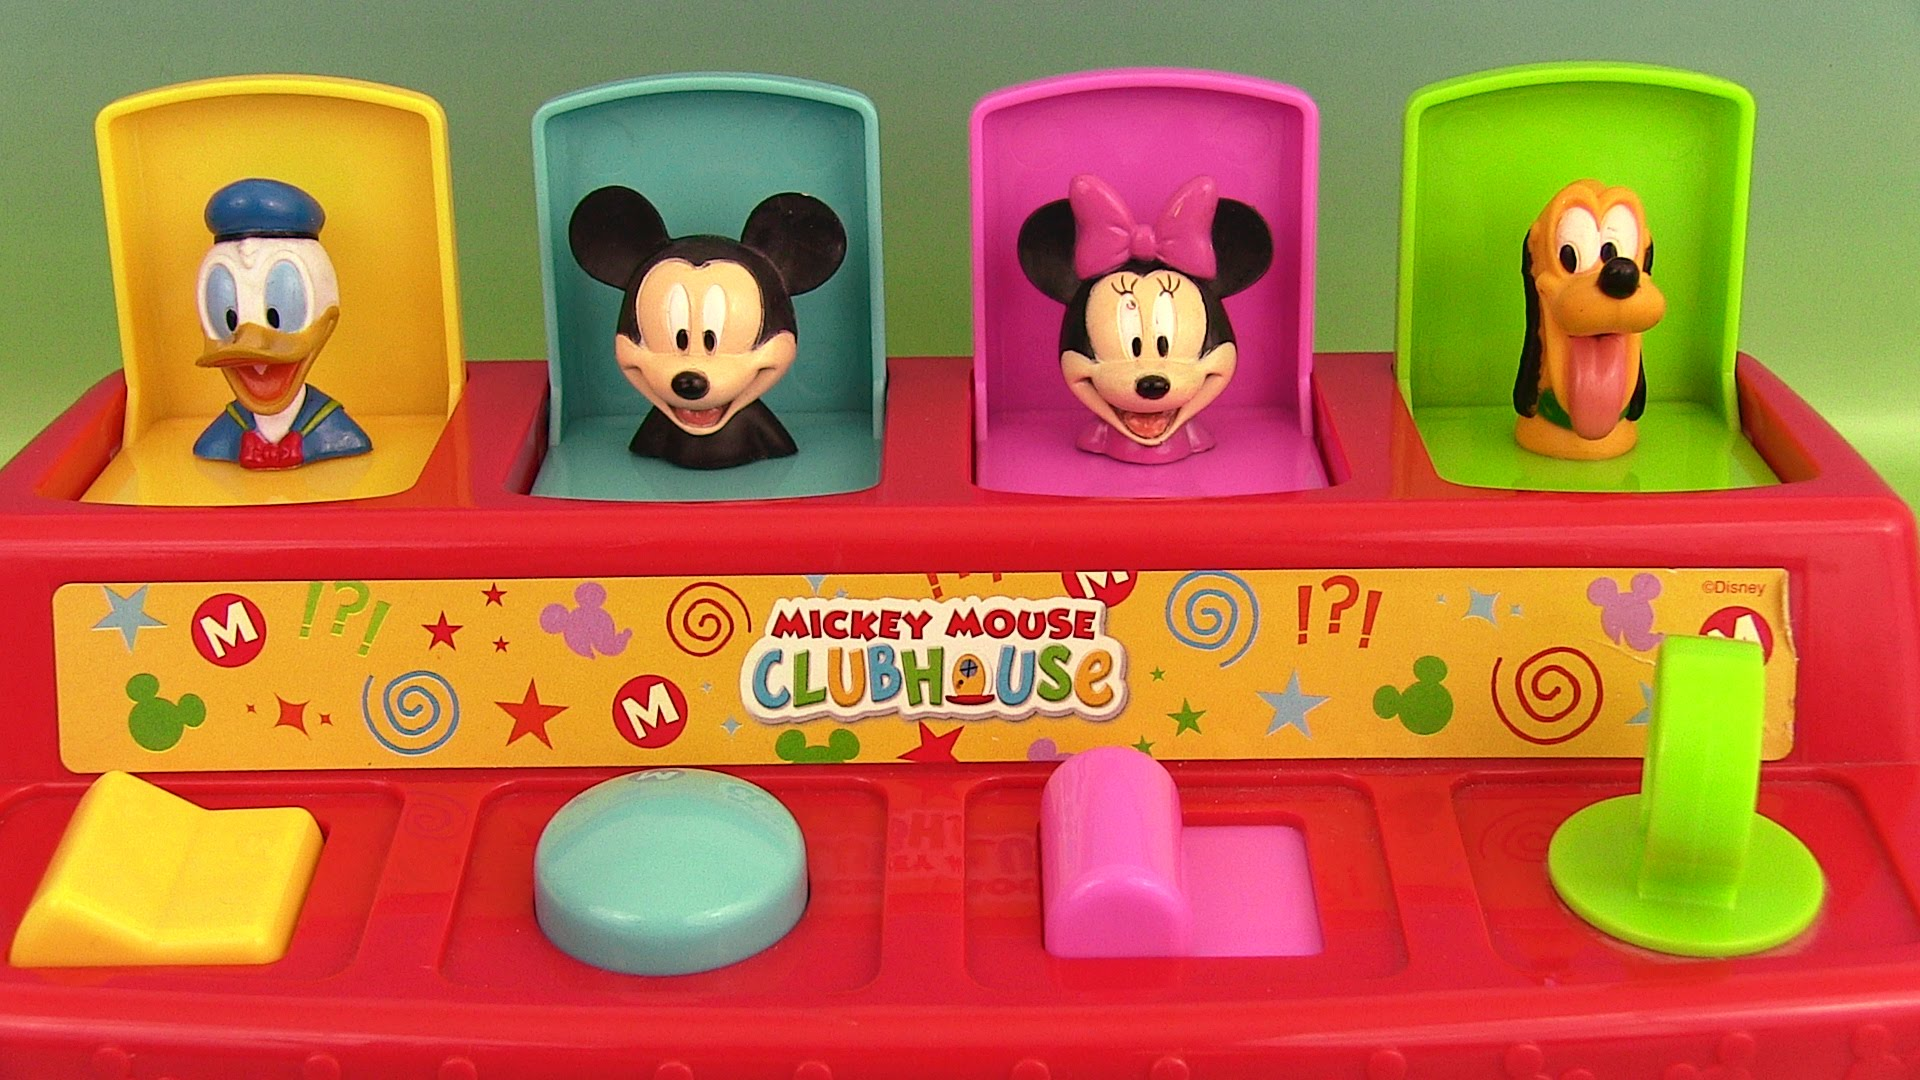 jouet mickey mouse clubhouse